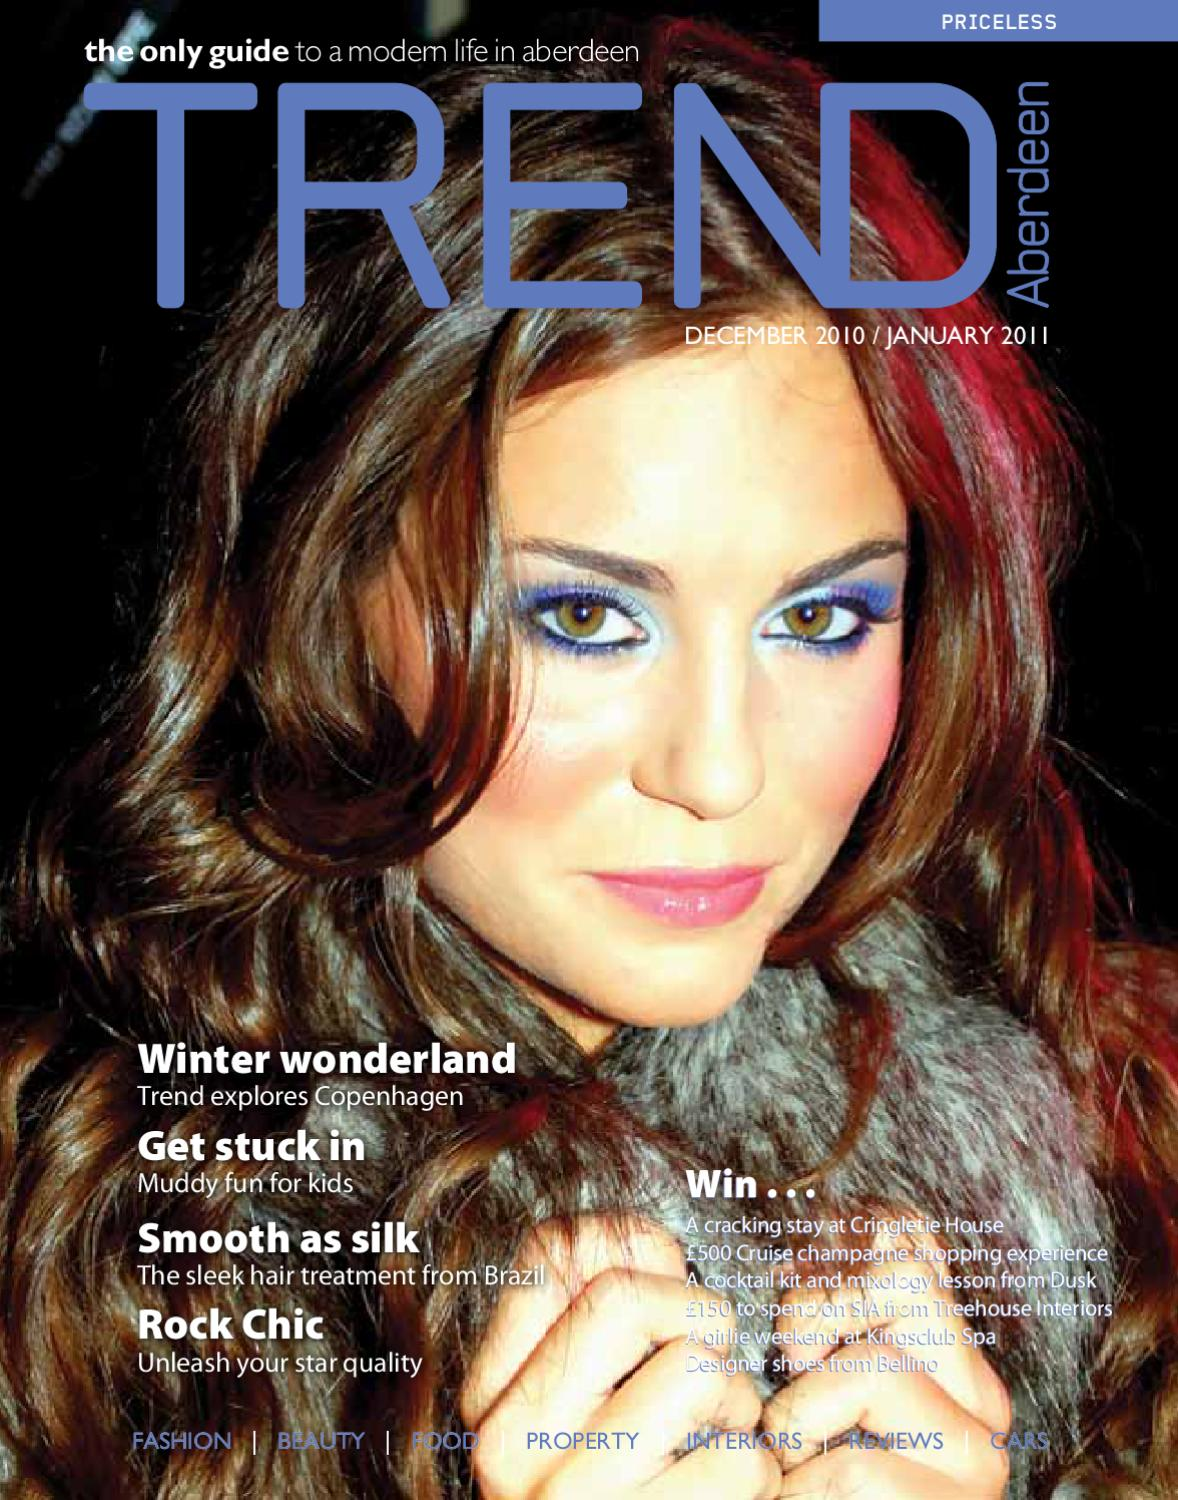 Trend Oct / Nov 2009 by Trend Productions Ltd. - issuu